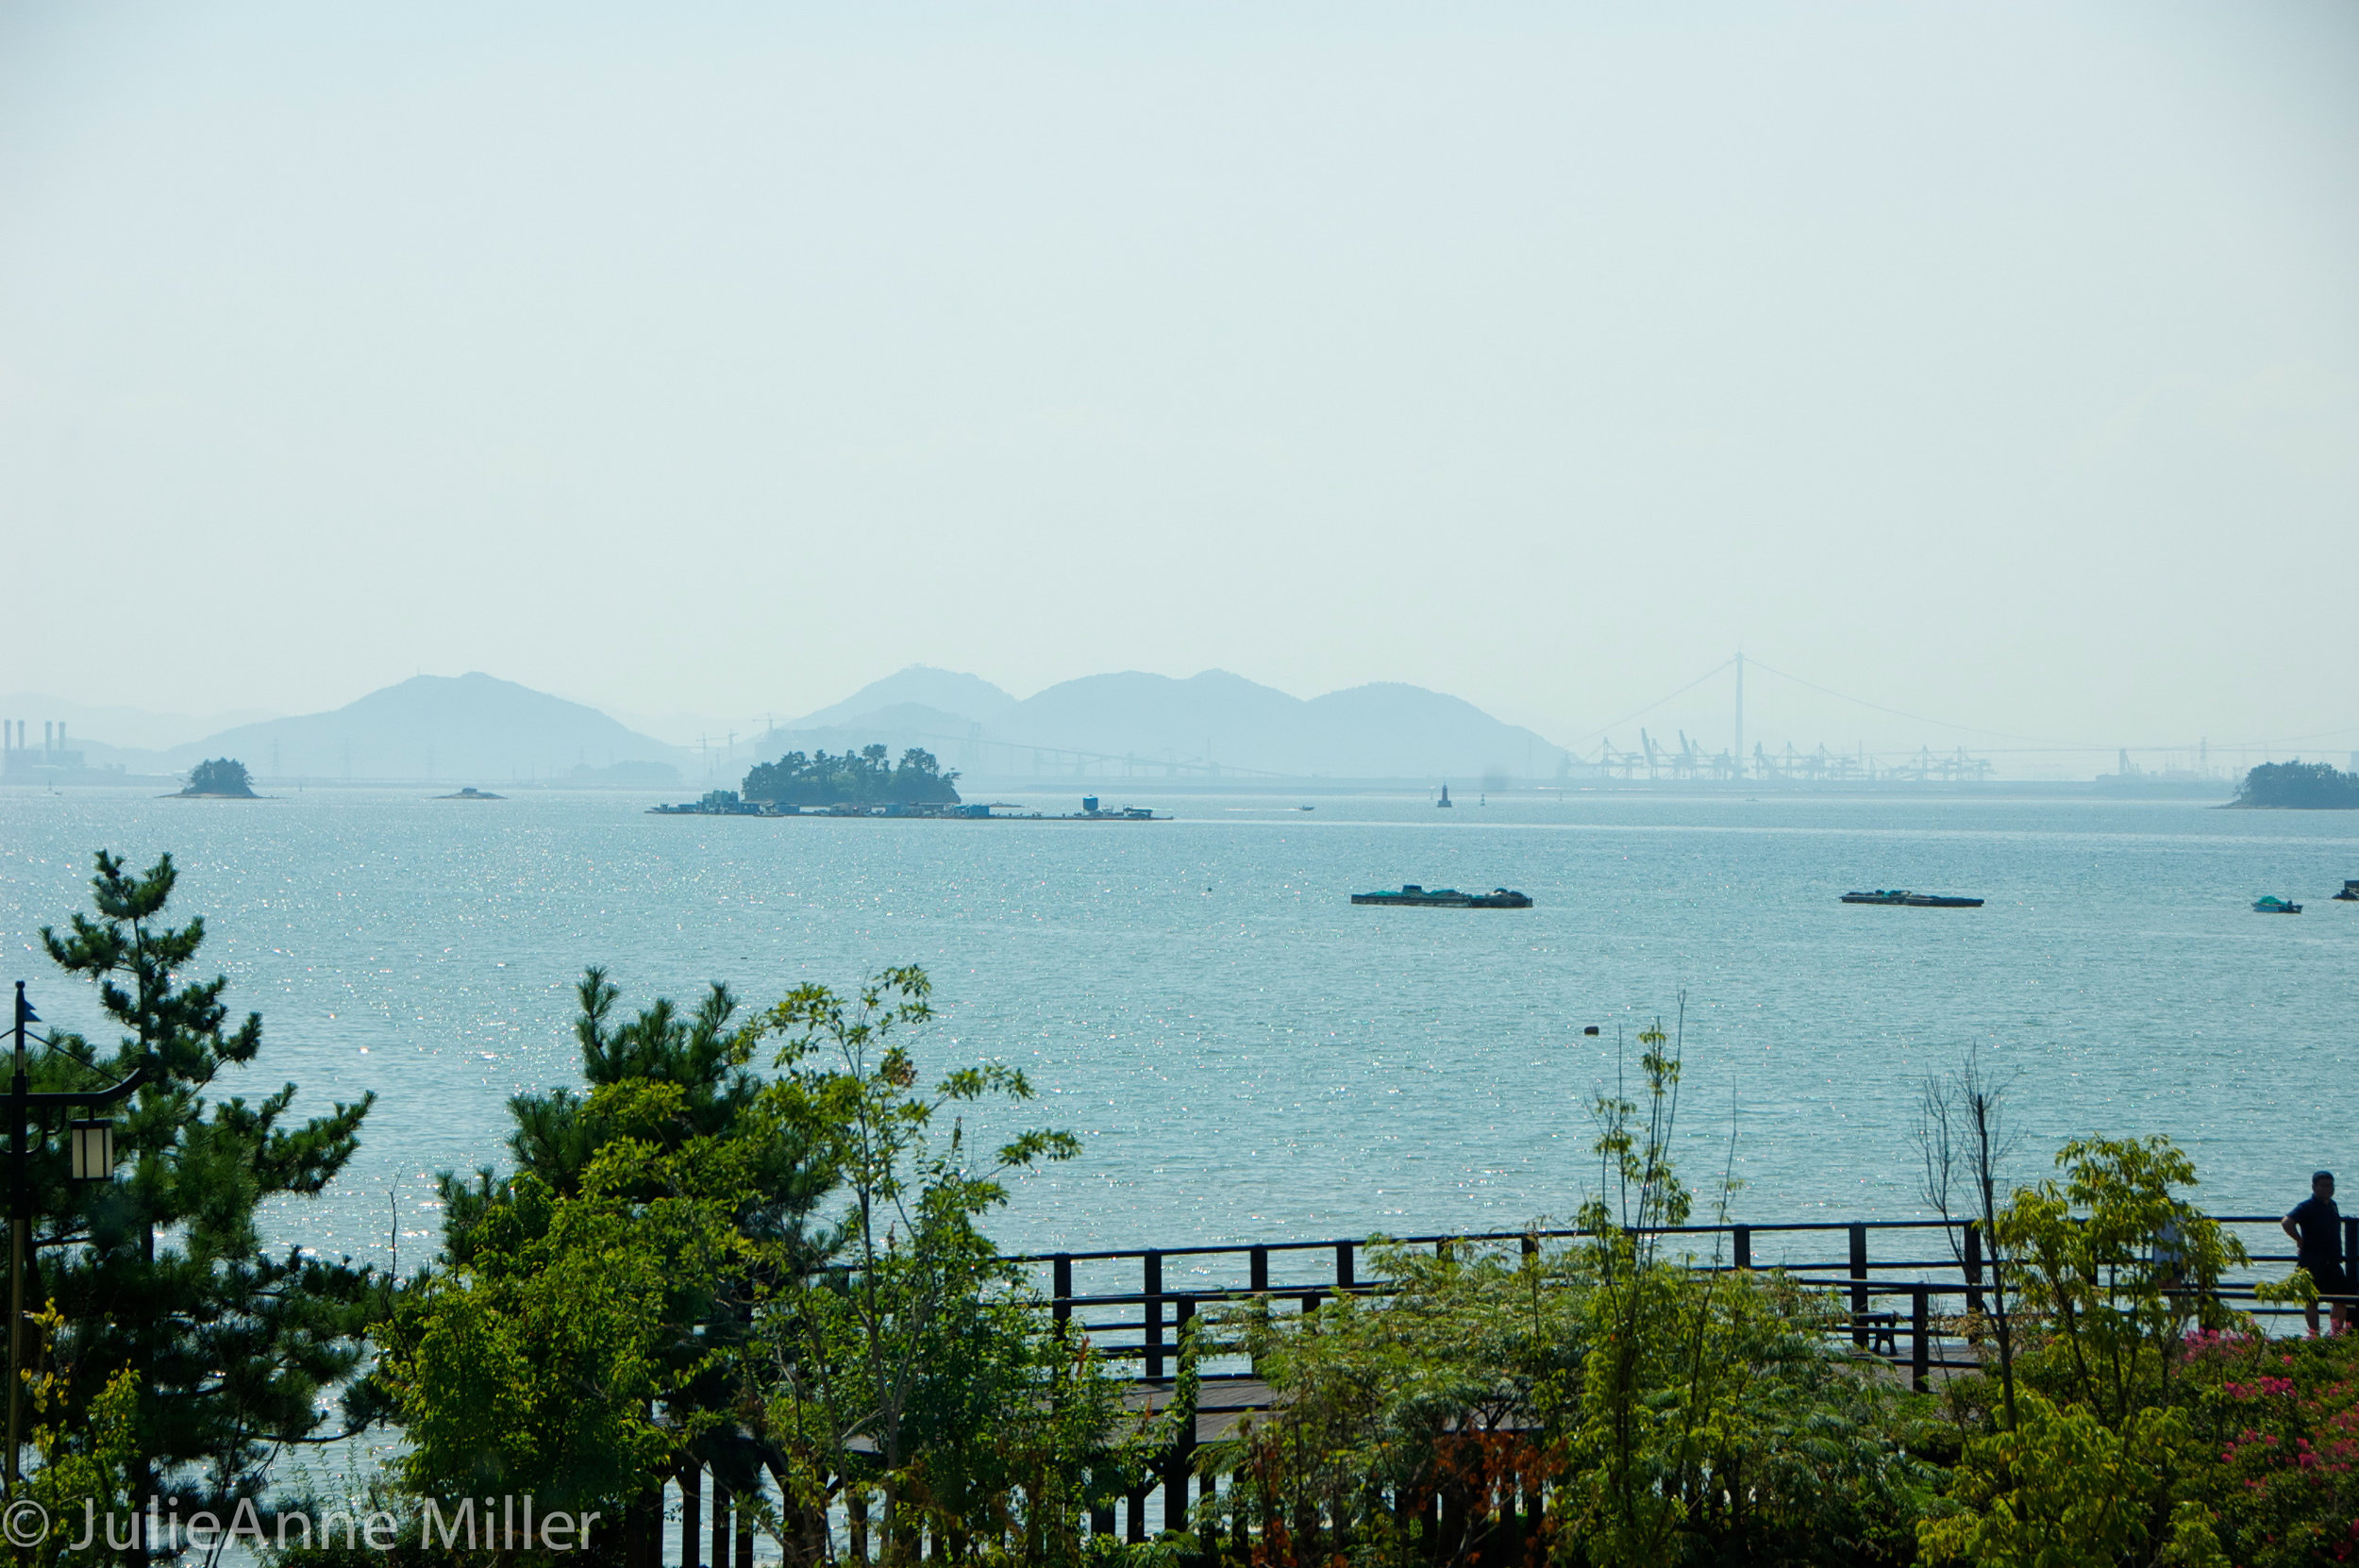 South Korean coast, Yi Su Shin museum